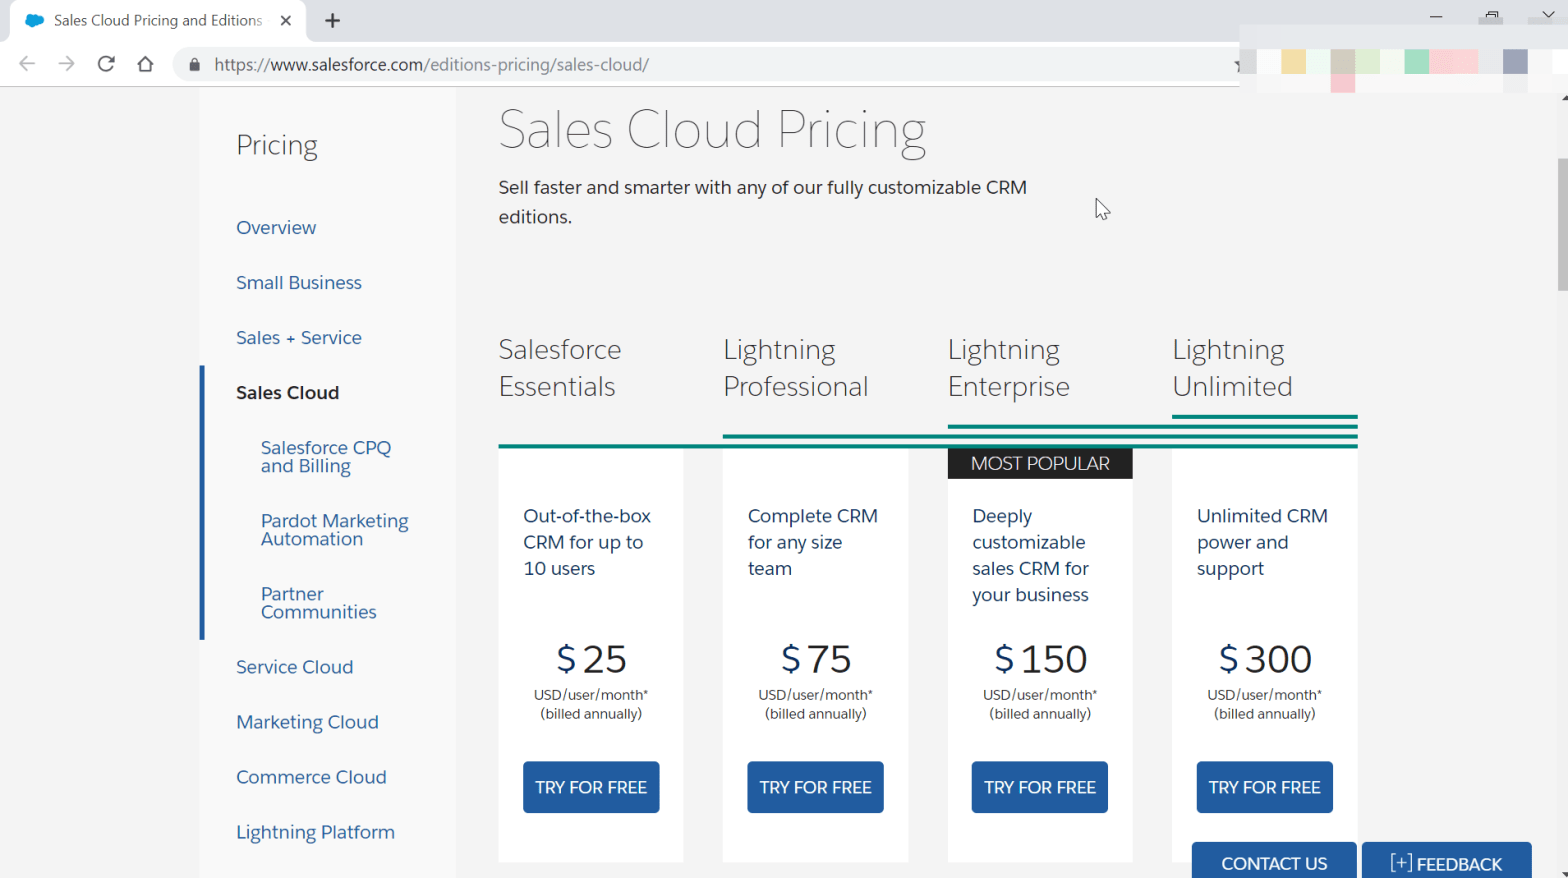 How much does a SalesForce license cost?